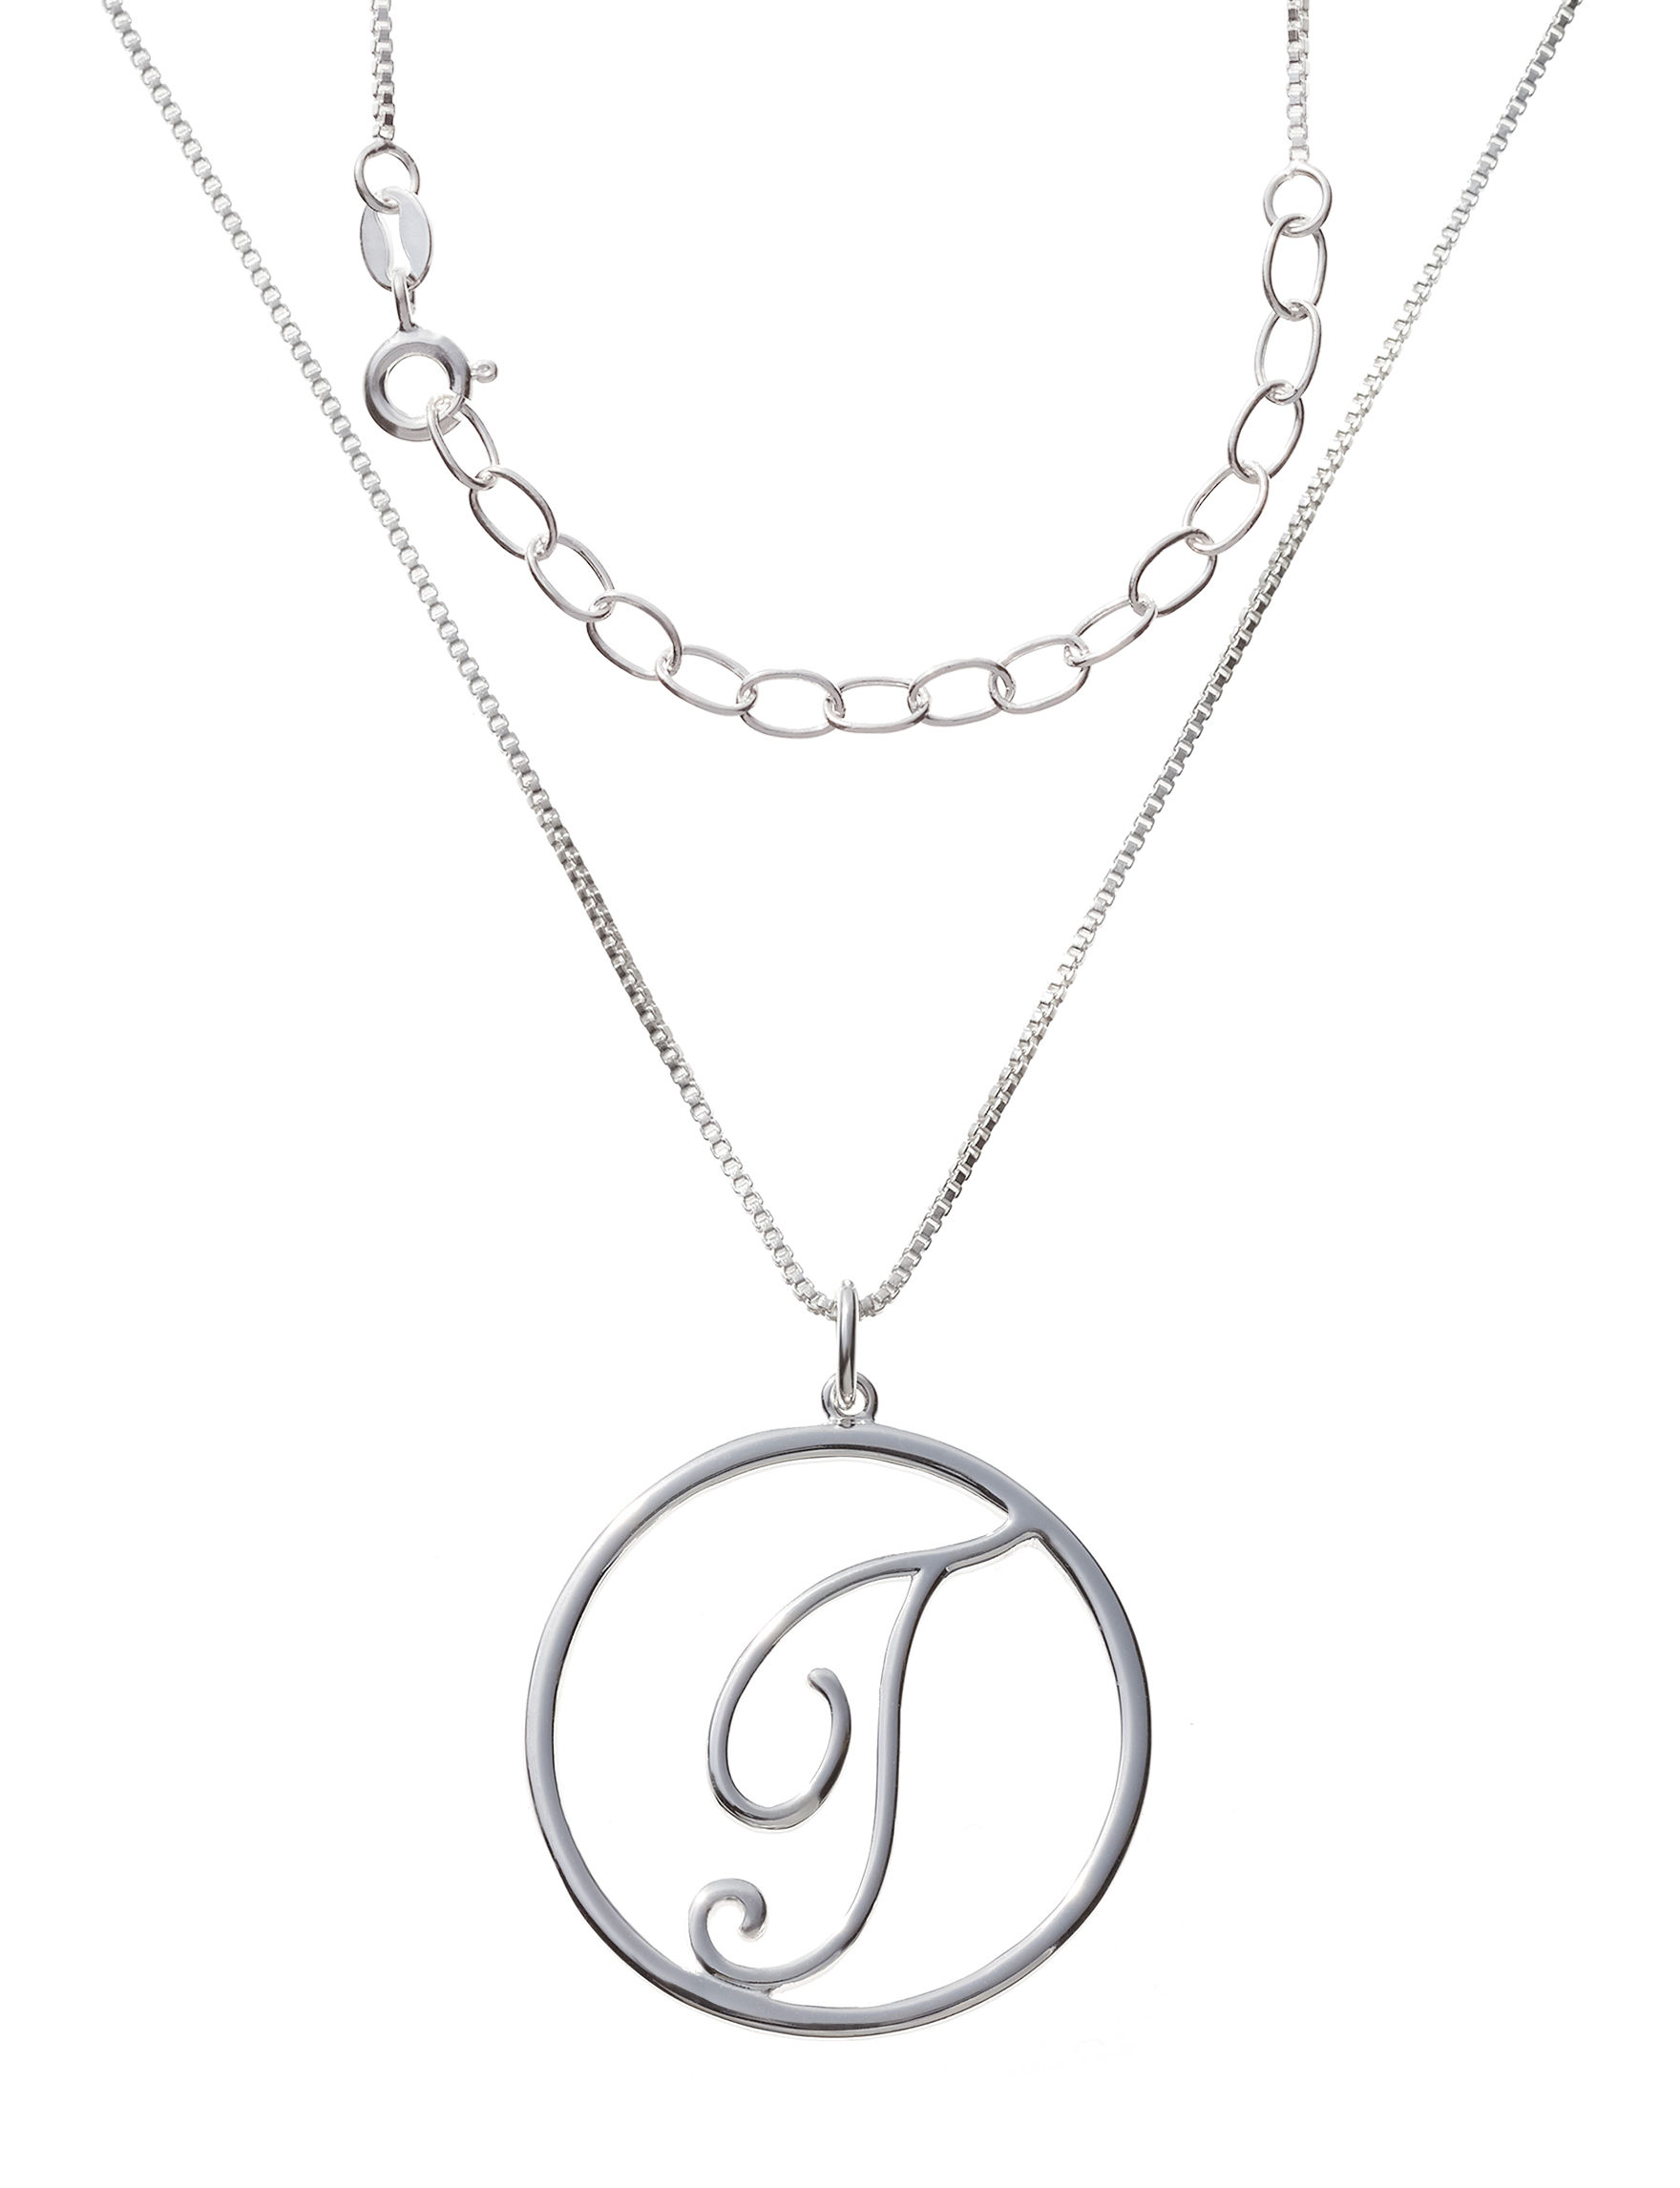 Danecraft Silver Necklaces & Pendants Fine Jewelry